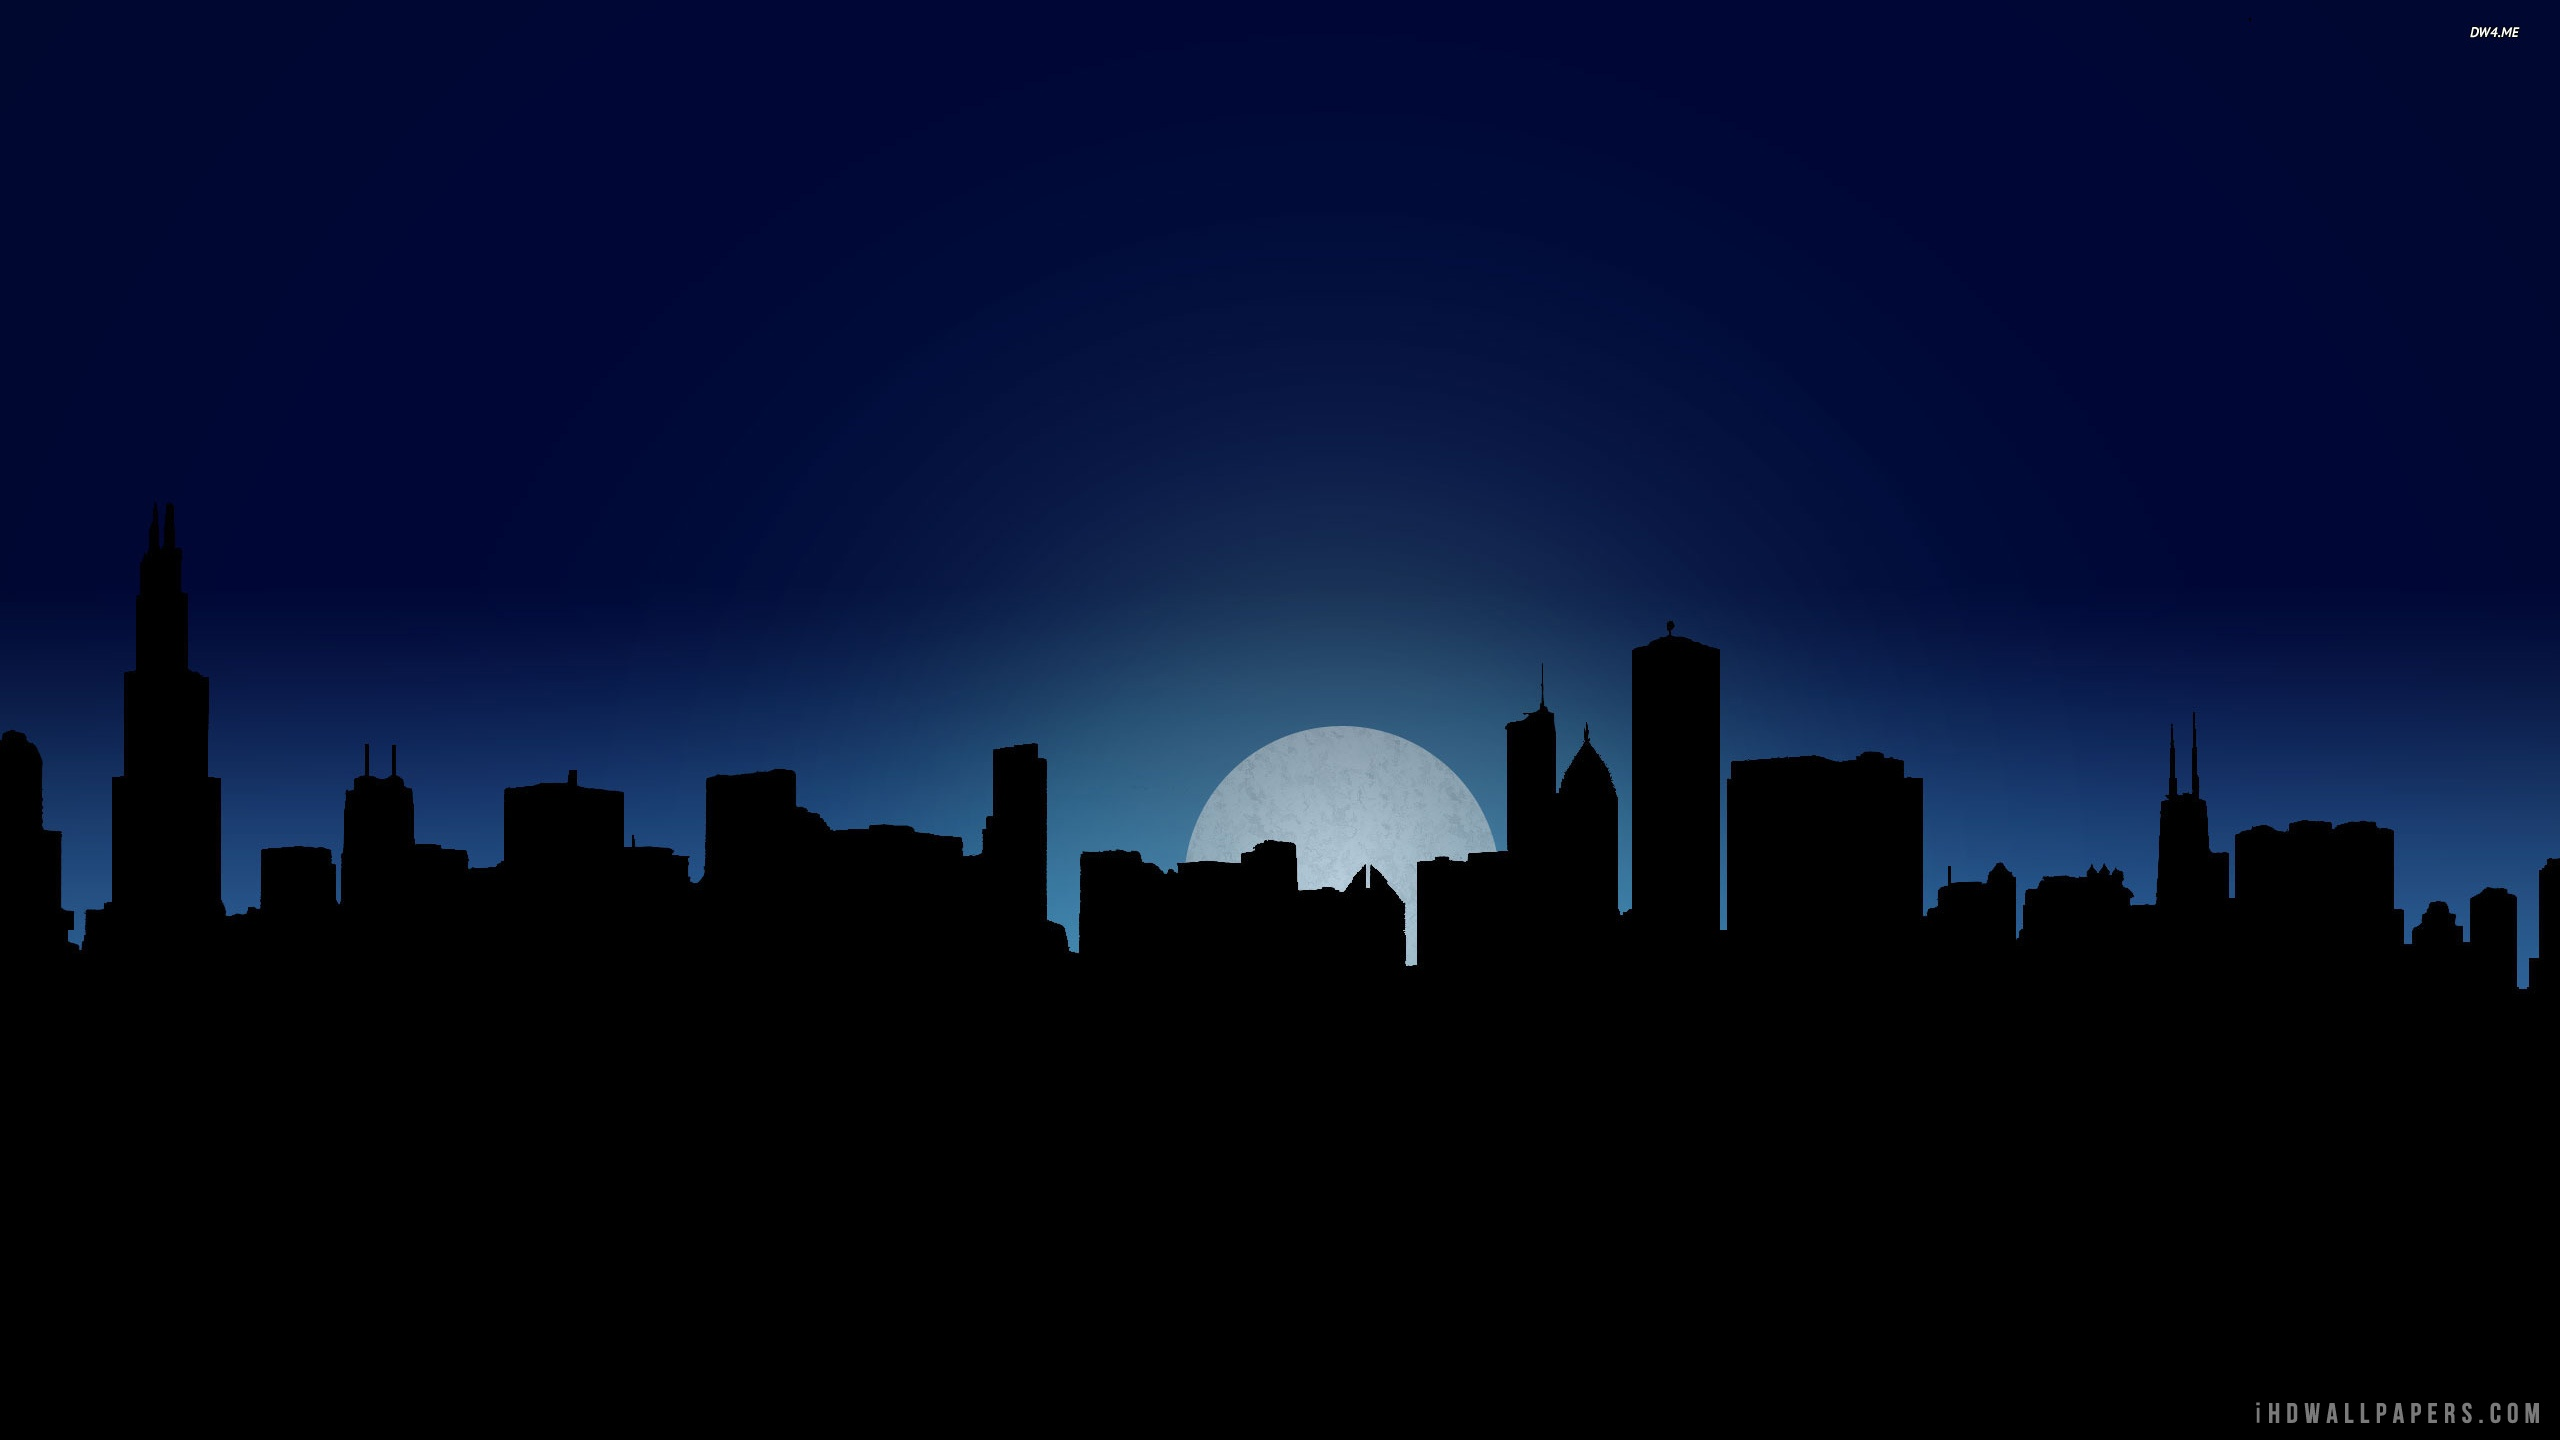 Chicago Skyline At Night Time Wallpaper 2560x1440